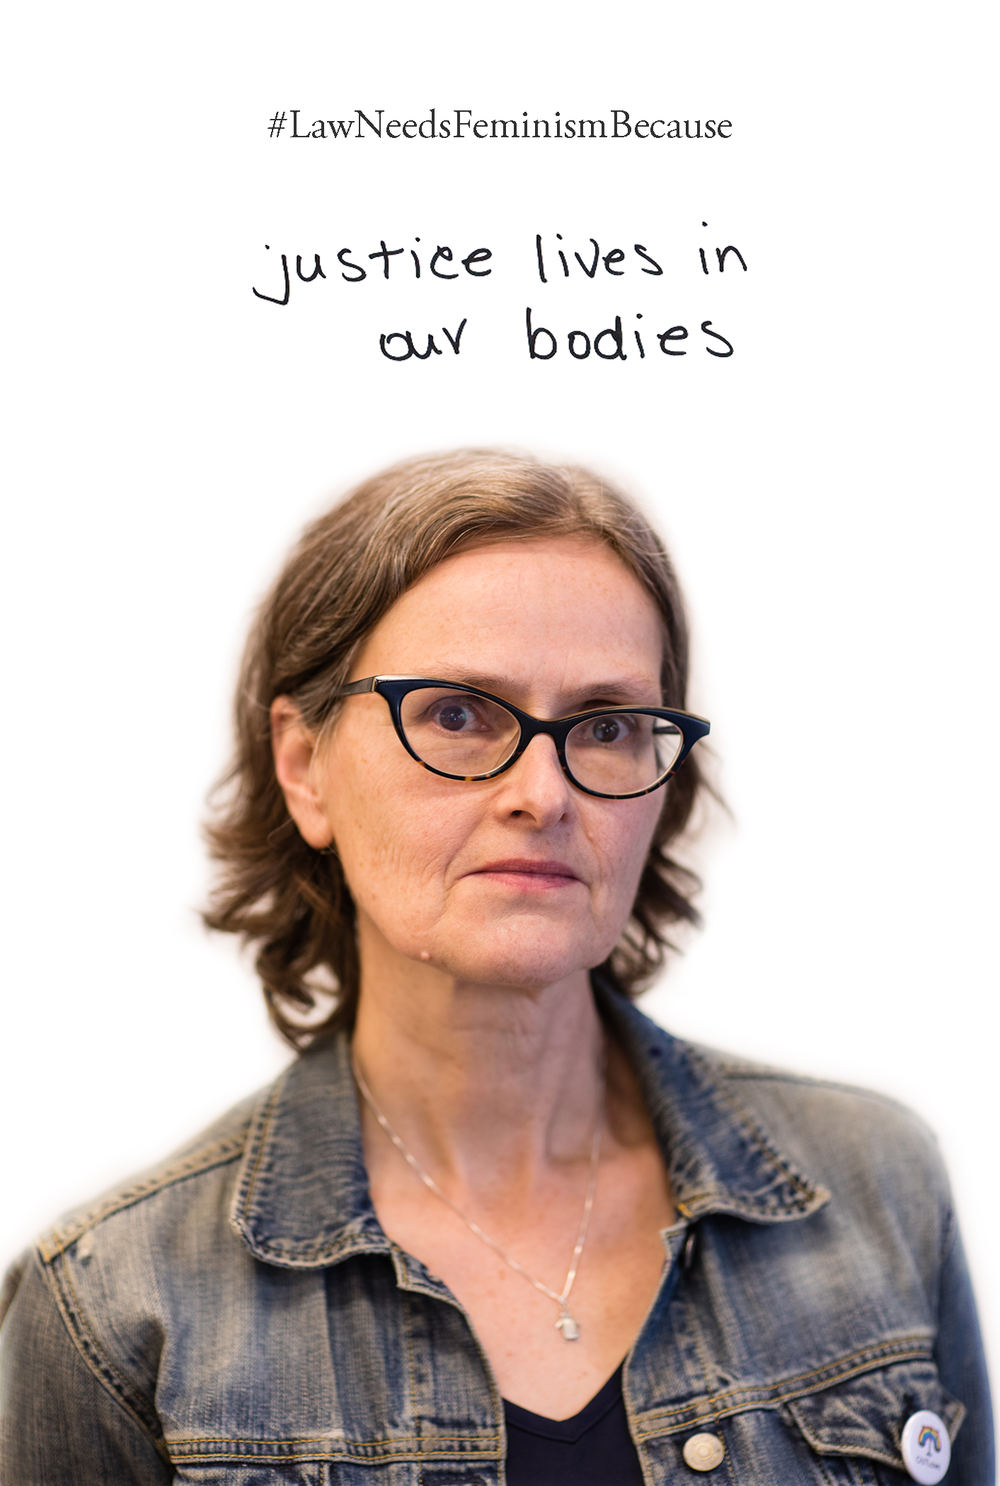 Law Needs Feminism Because  justice lives in our bodies